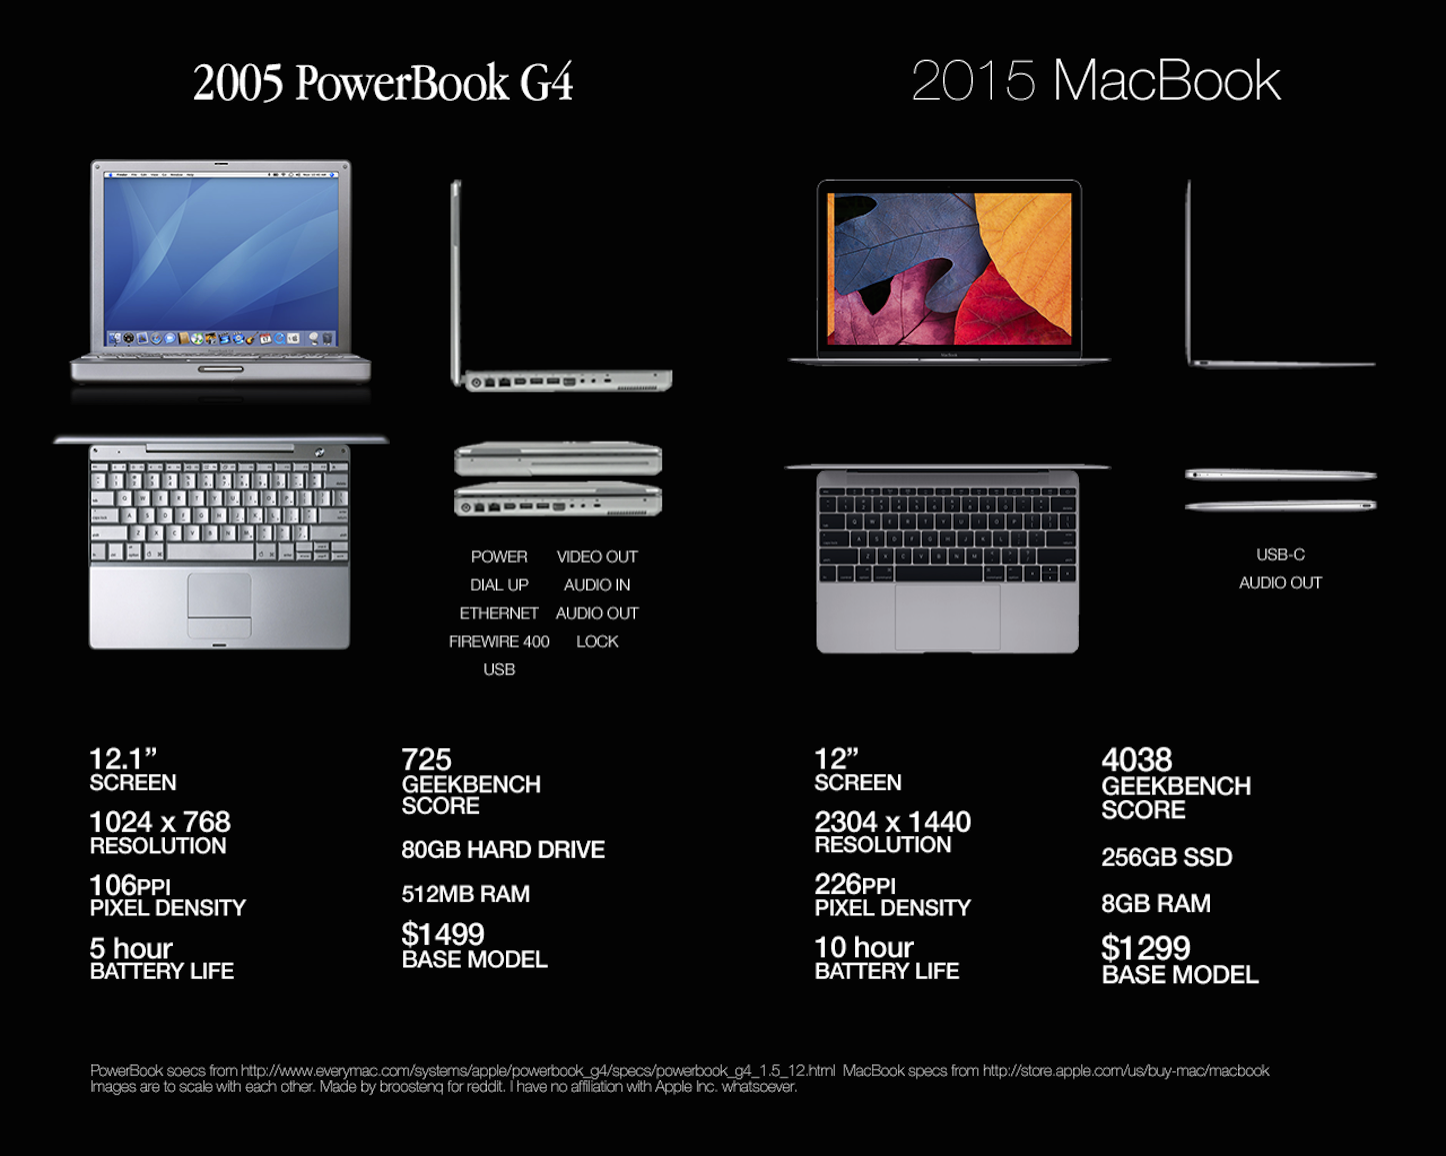 12 inch retina macbook vs 12 inch powerbook